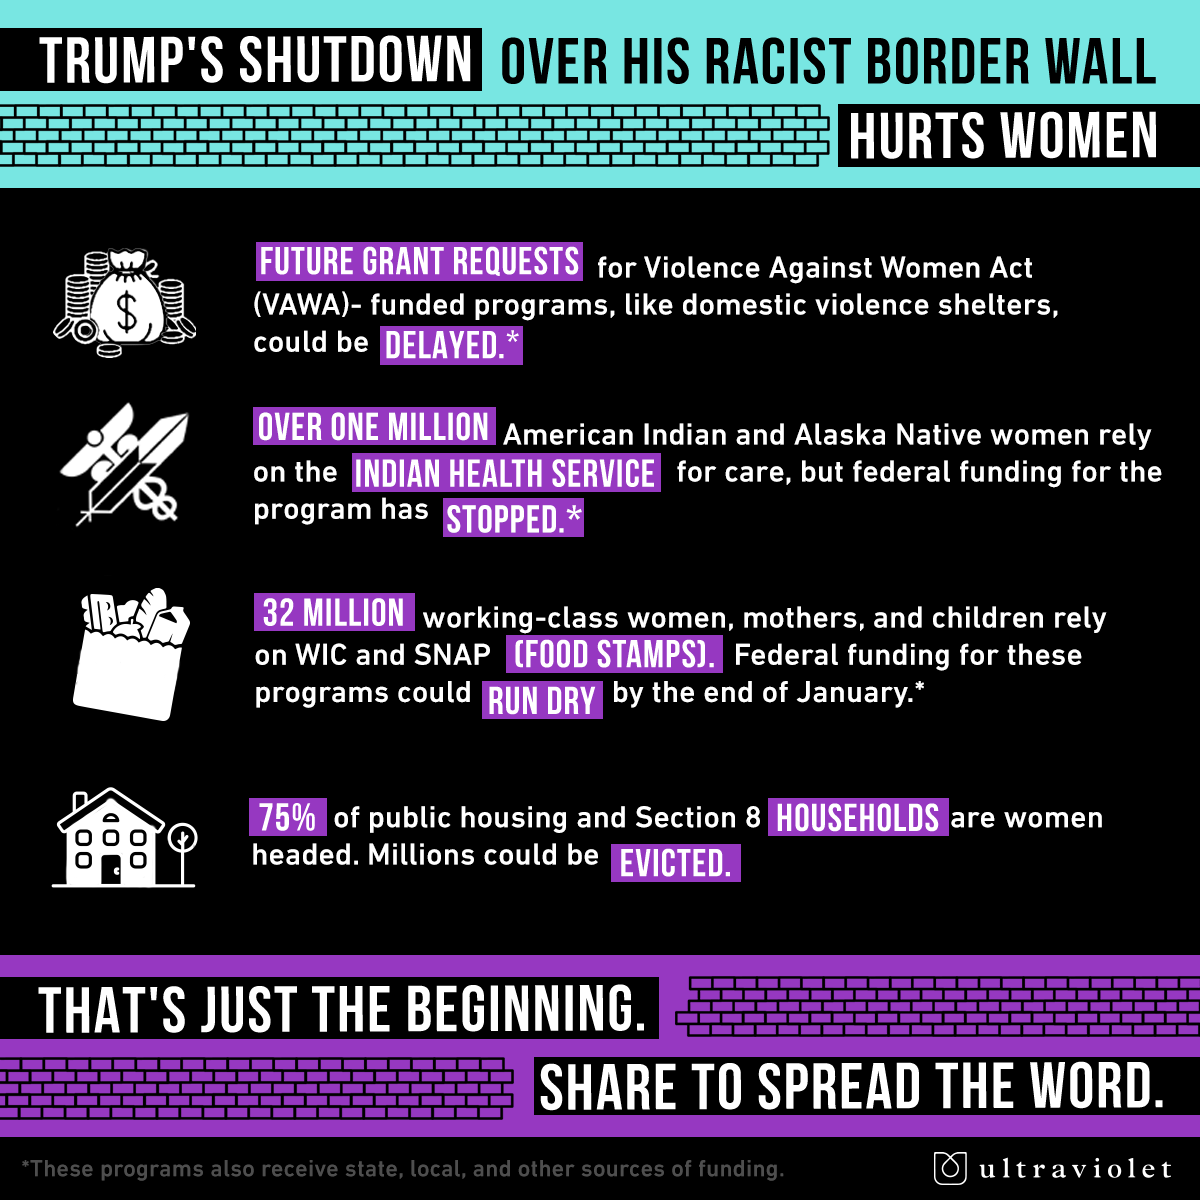 The #TrumpShutdown hurt women